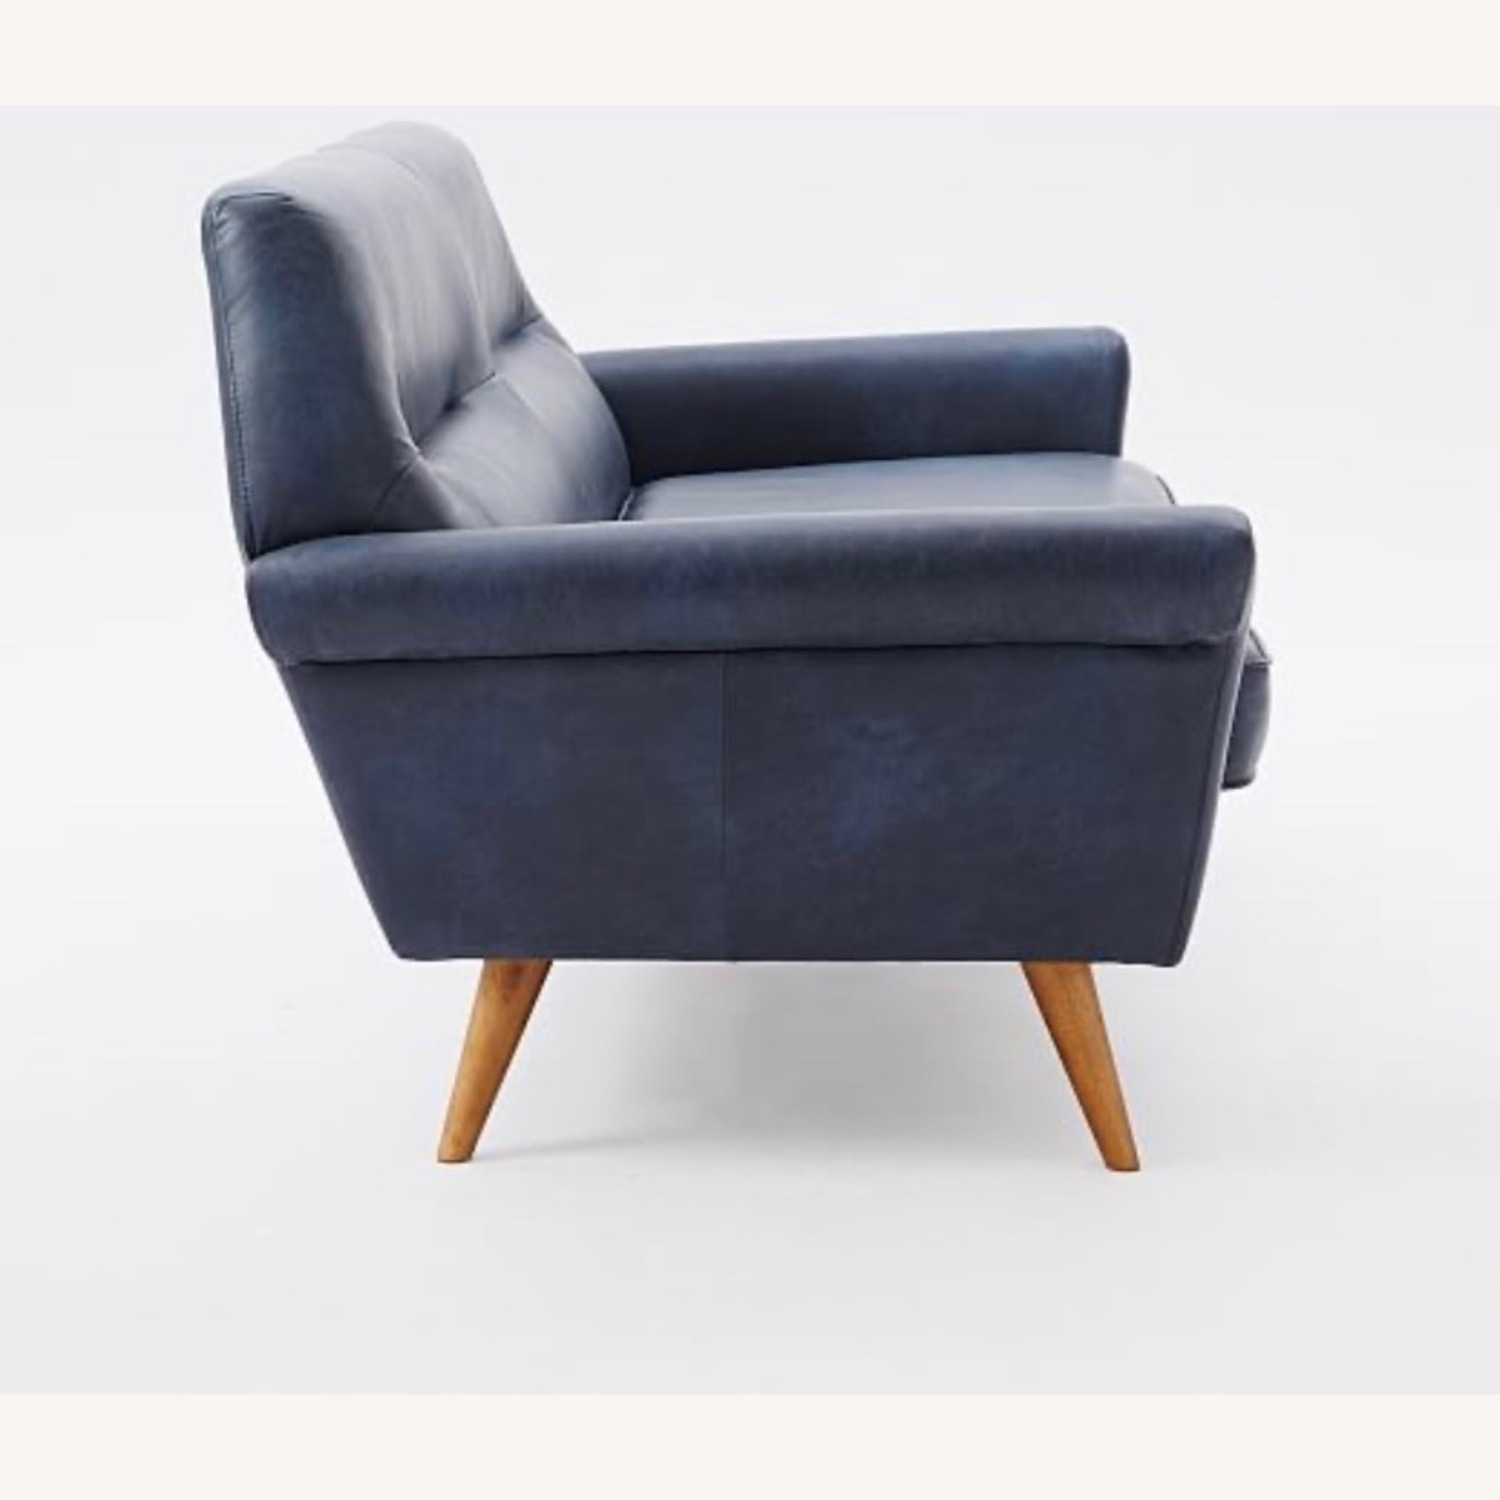 West Elm Leather 2-Seater Sofa - image-3